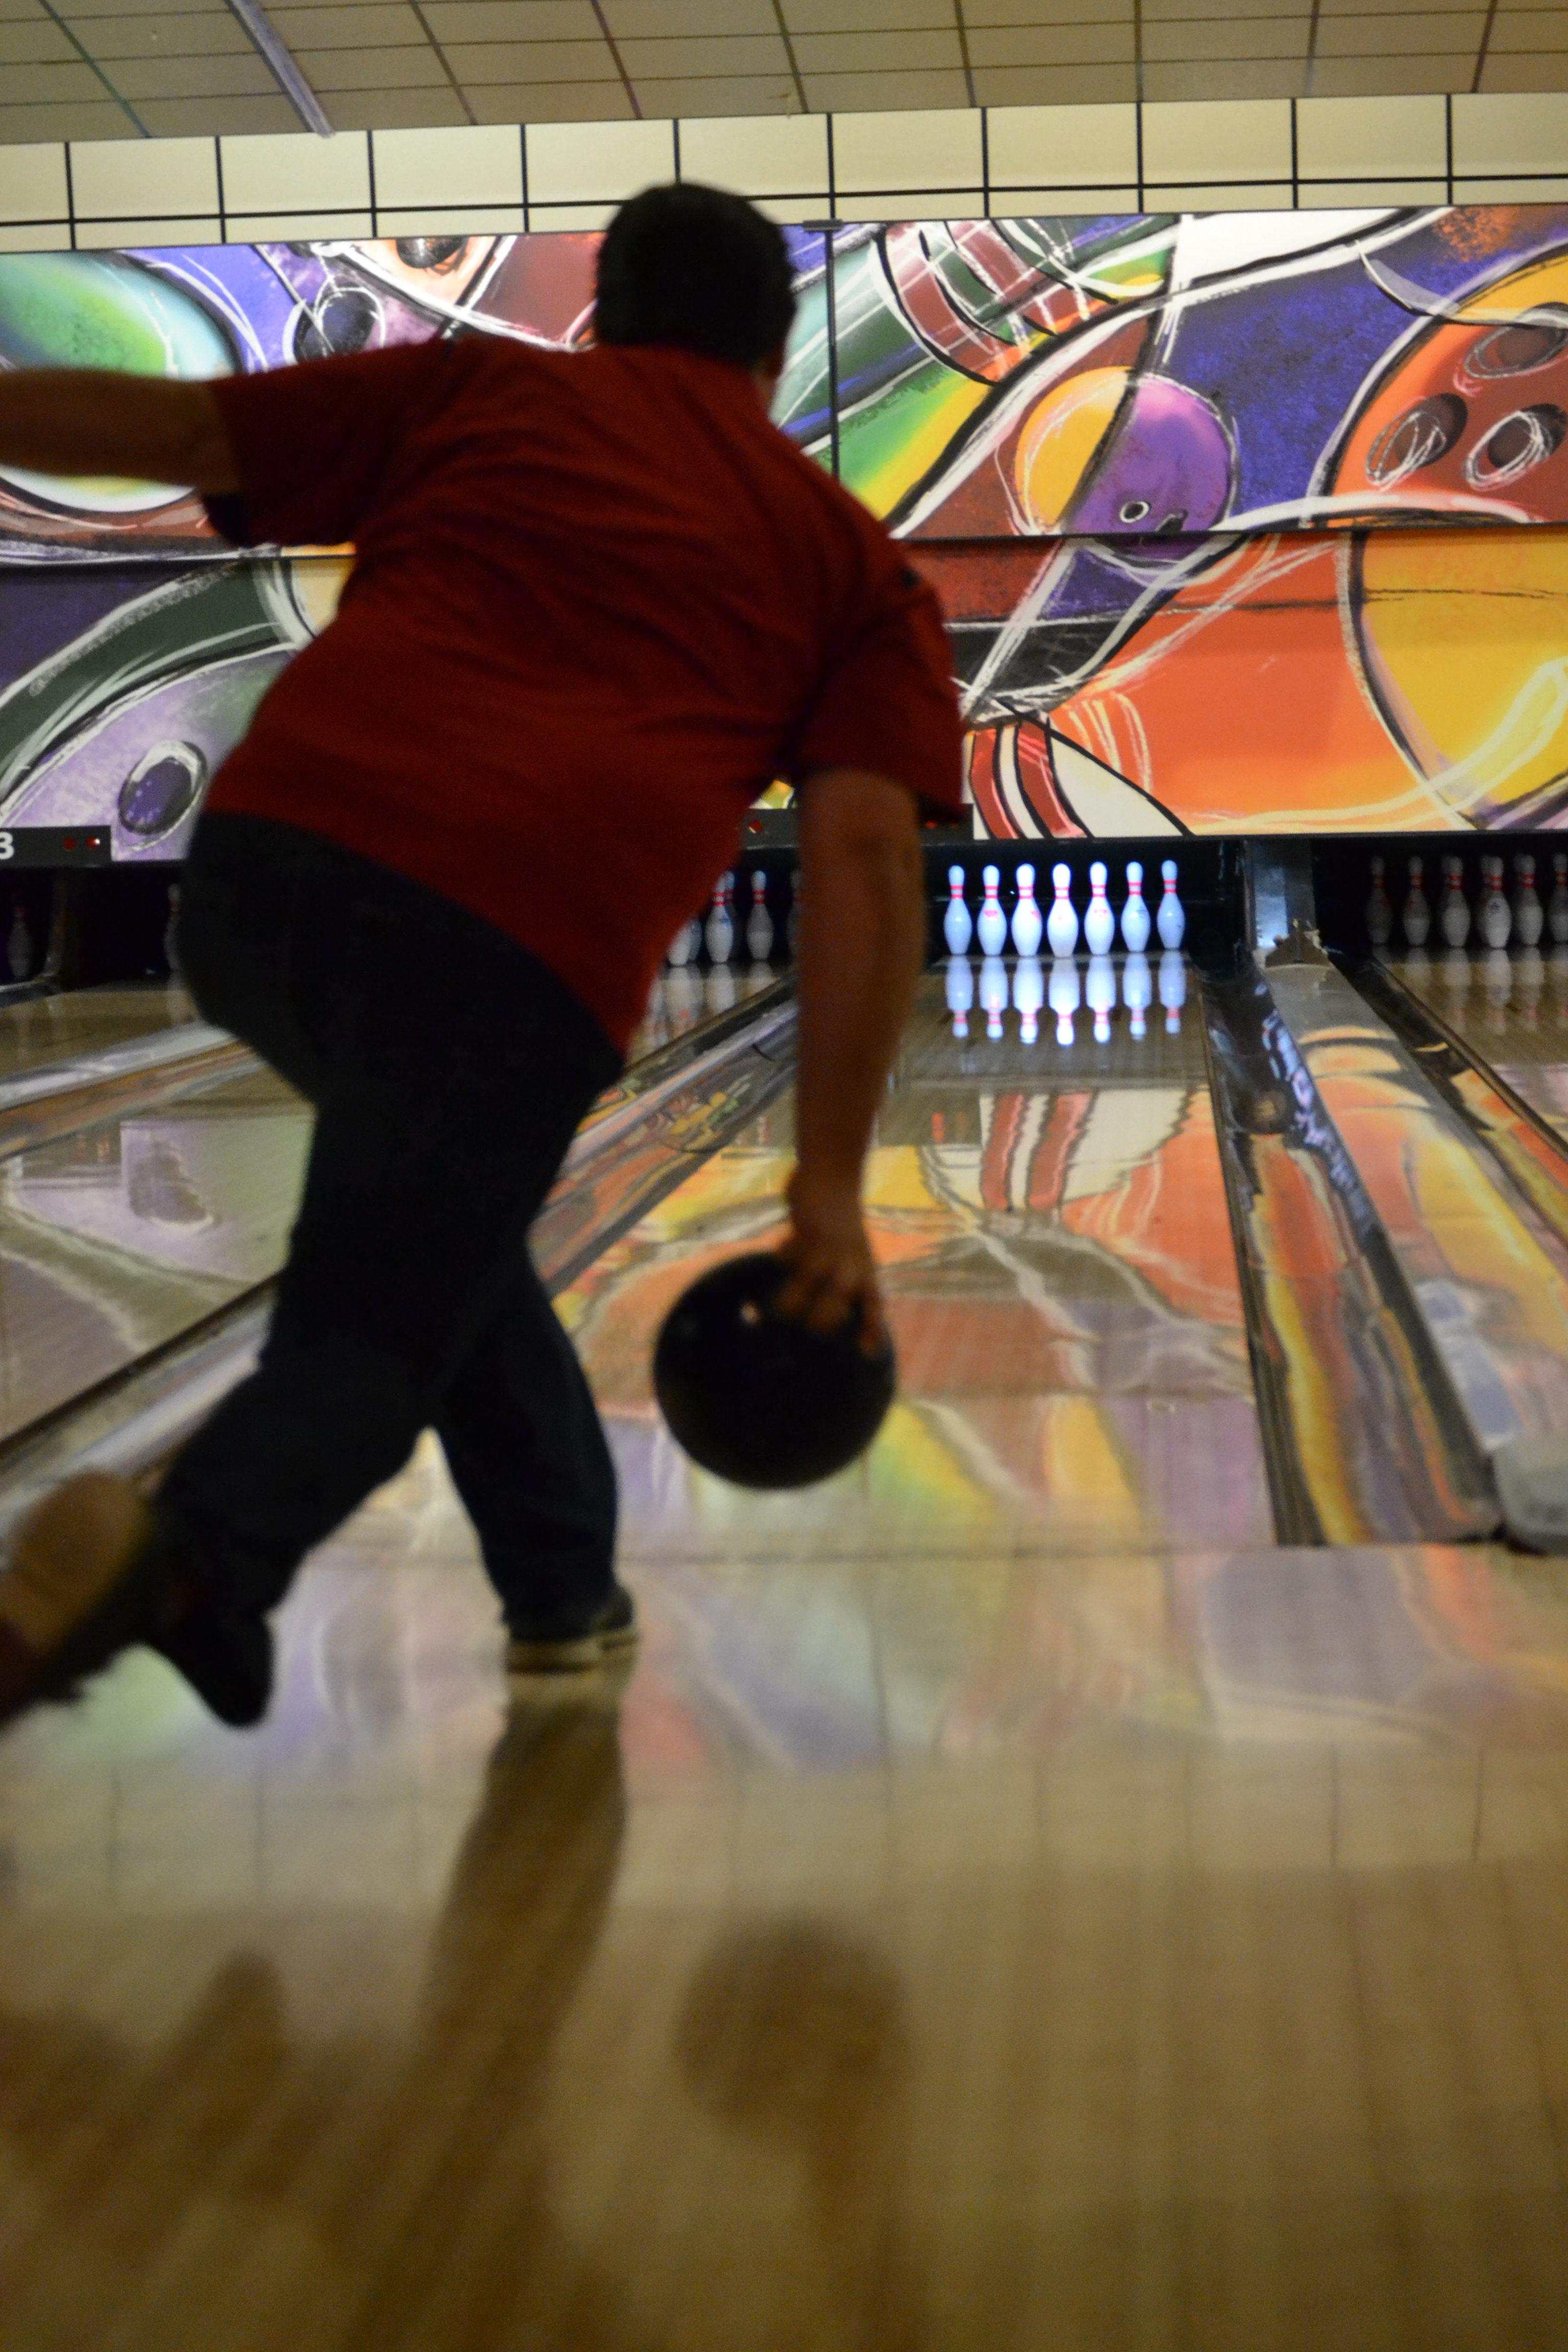 A bowler goes for a strike at Cypress Lanes in Winter Haven